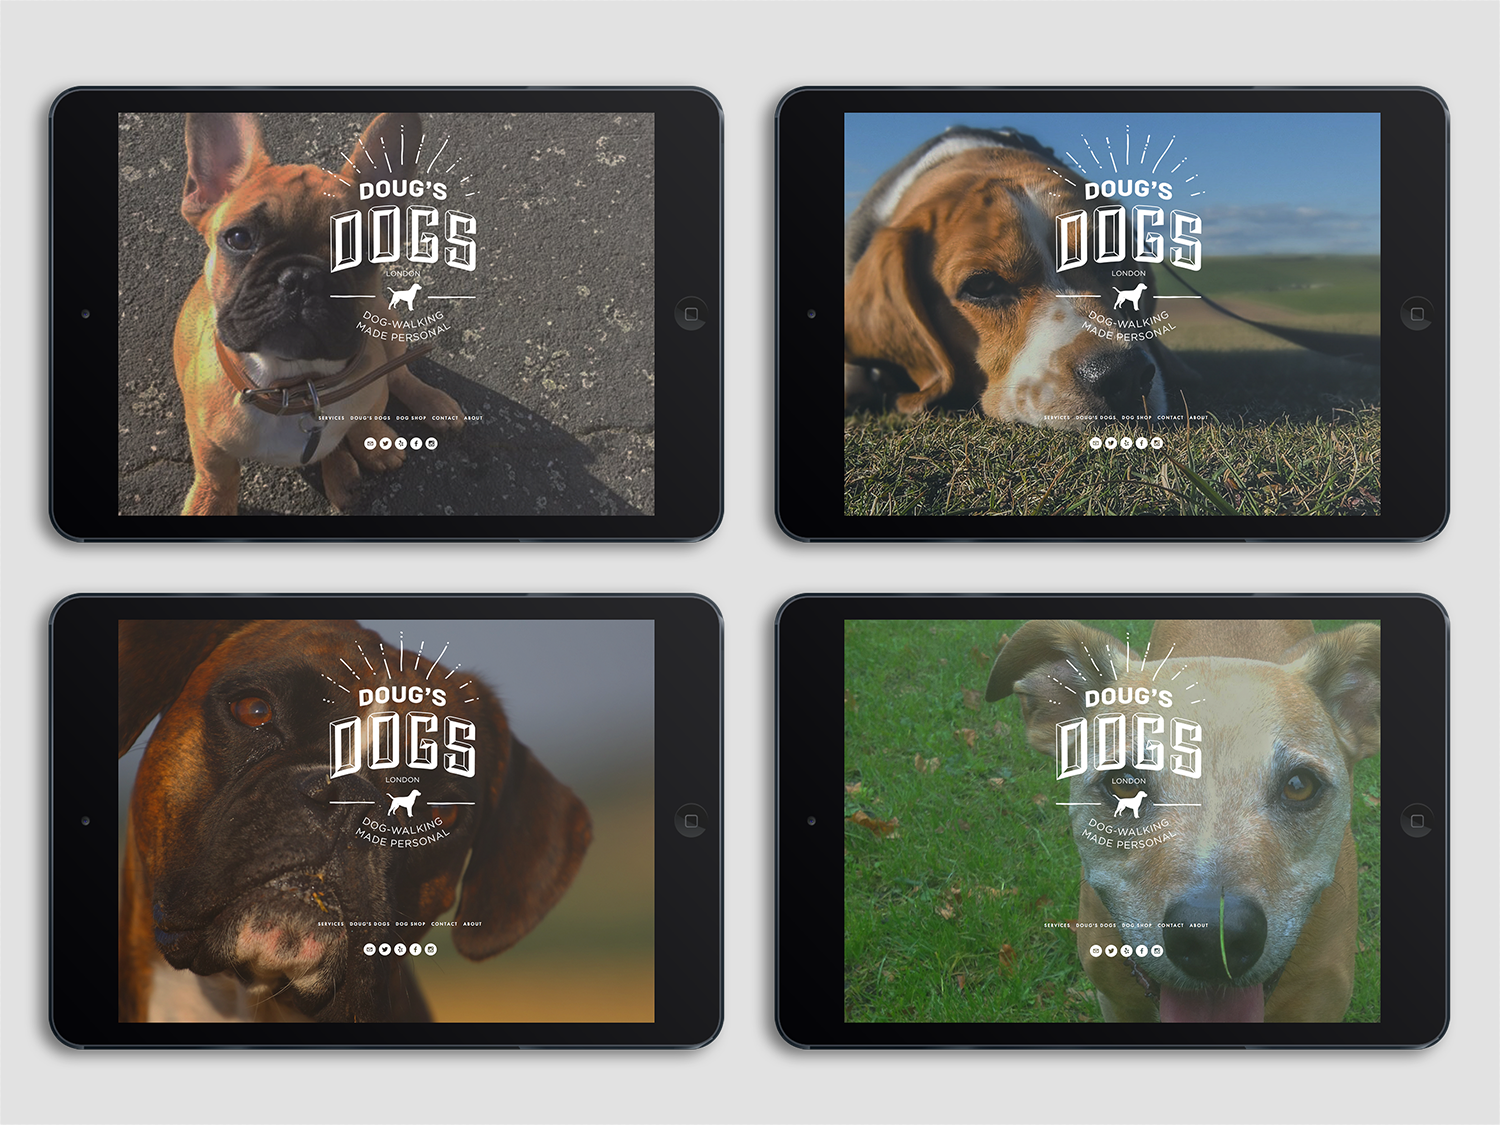 Images of Doug's Dogs webpages